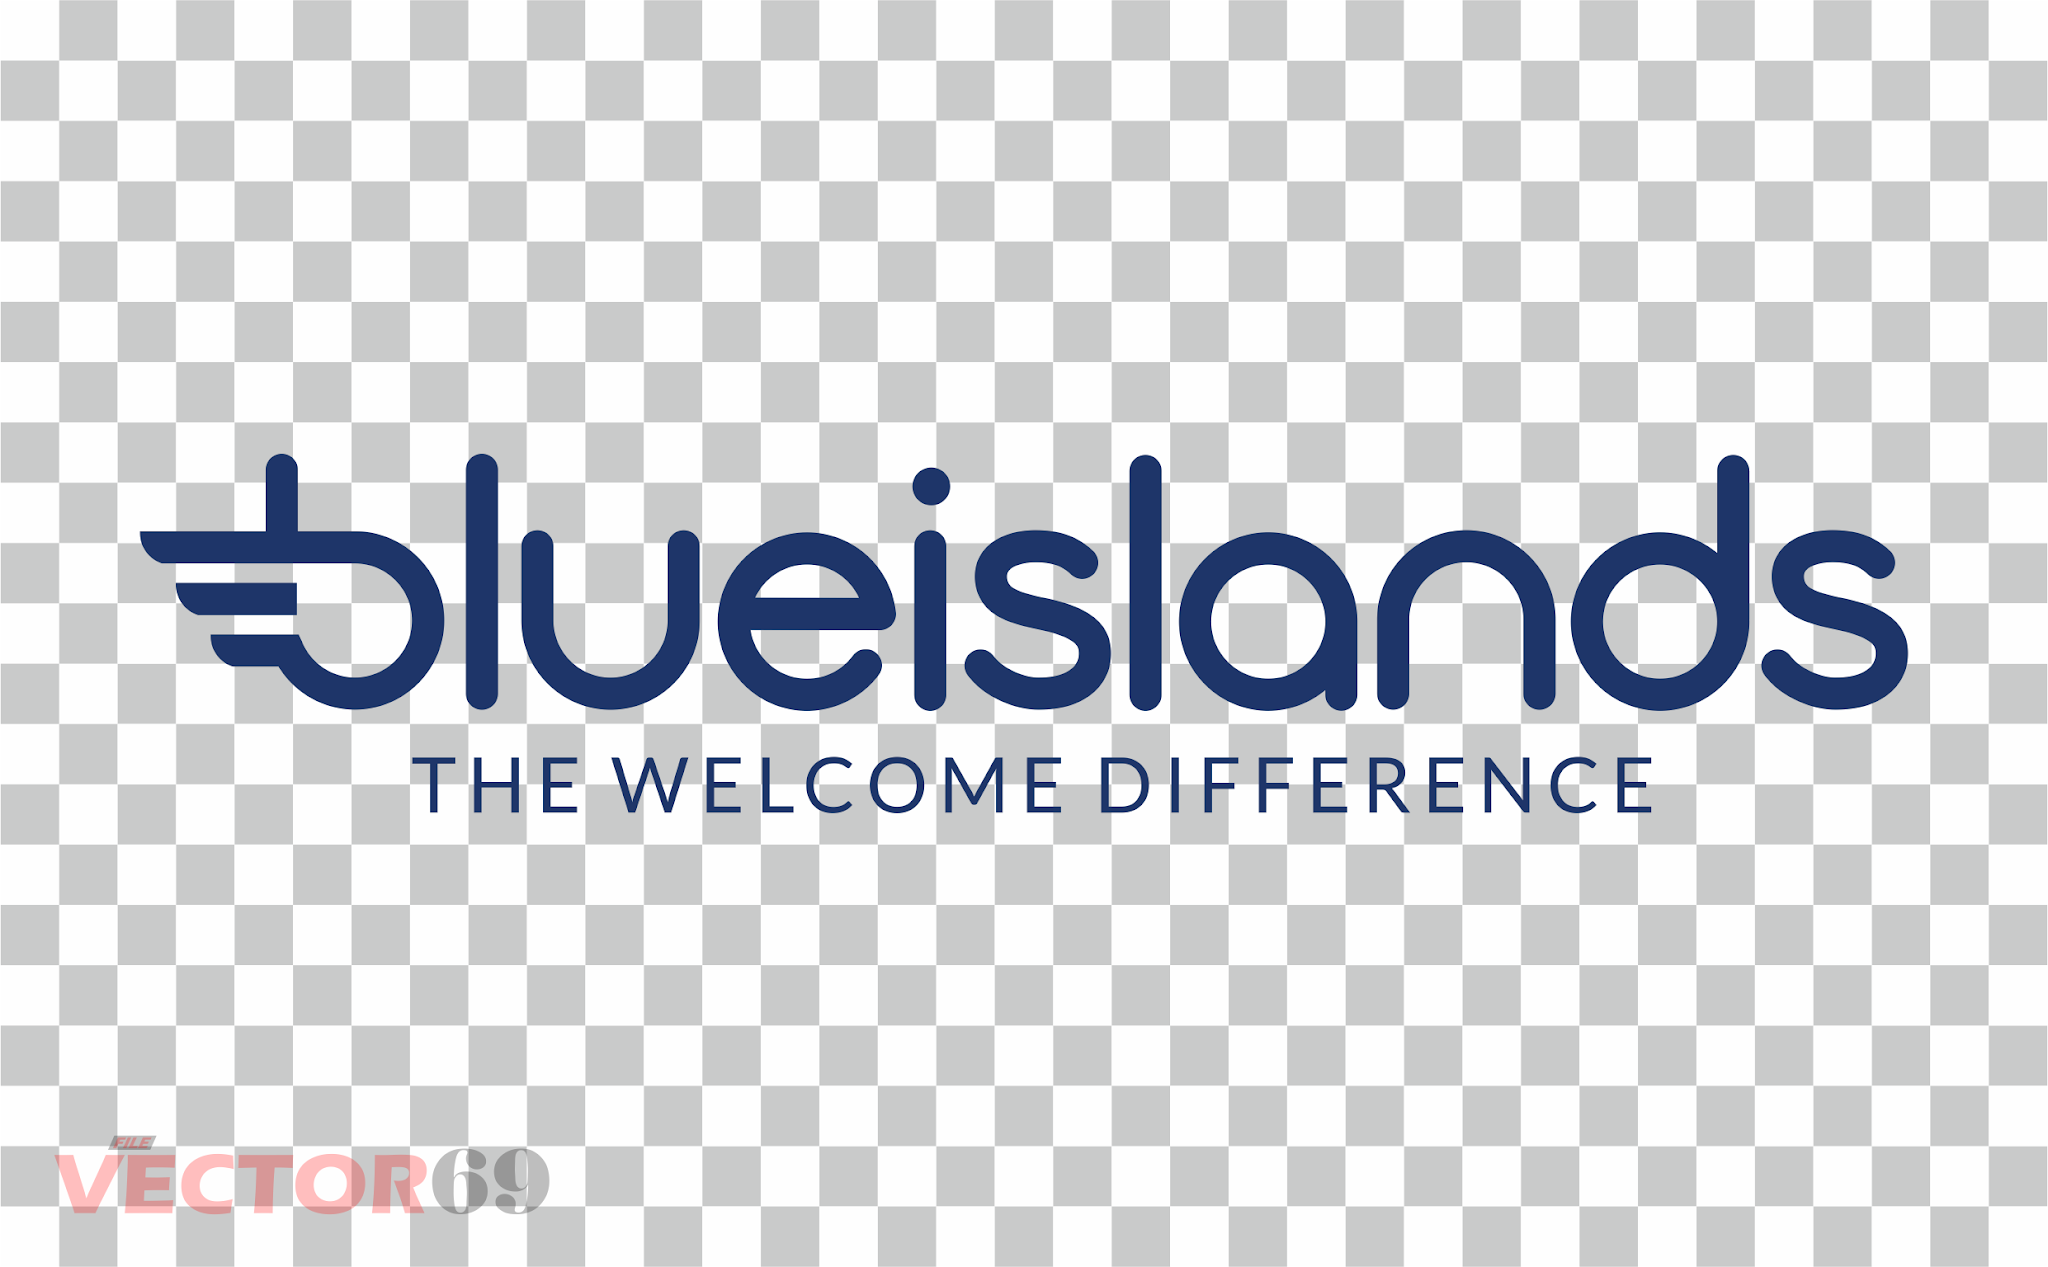 Blue Islands New 2020 Logo - Download Vector File PNG (Portable Network Graphics)